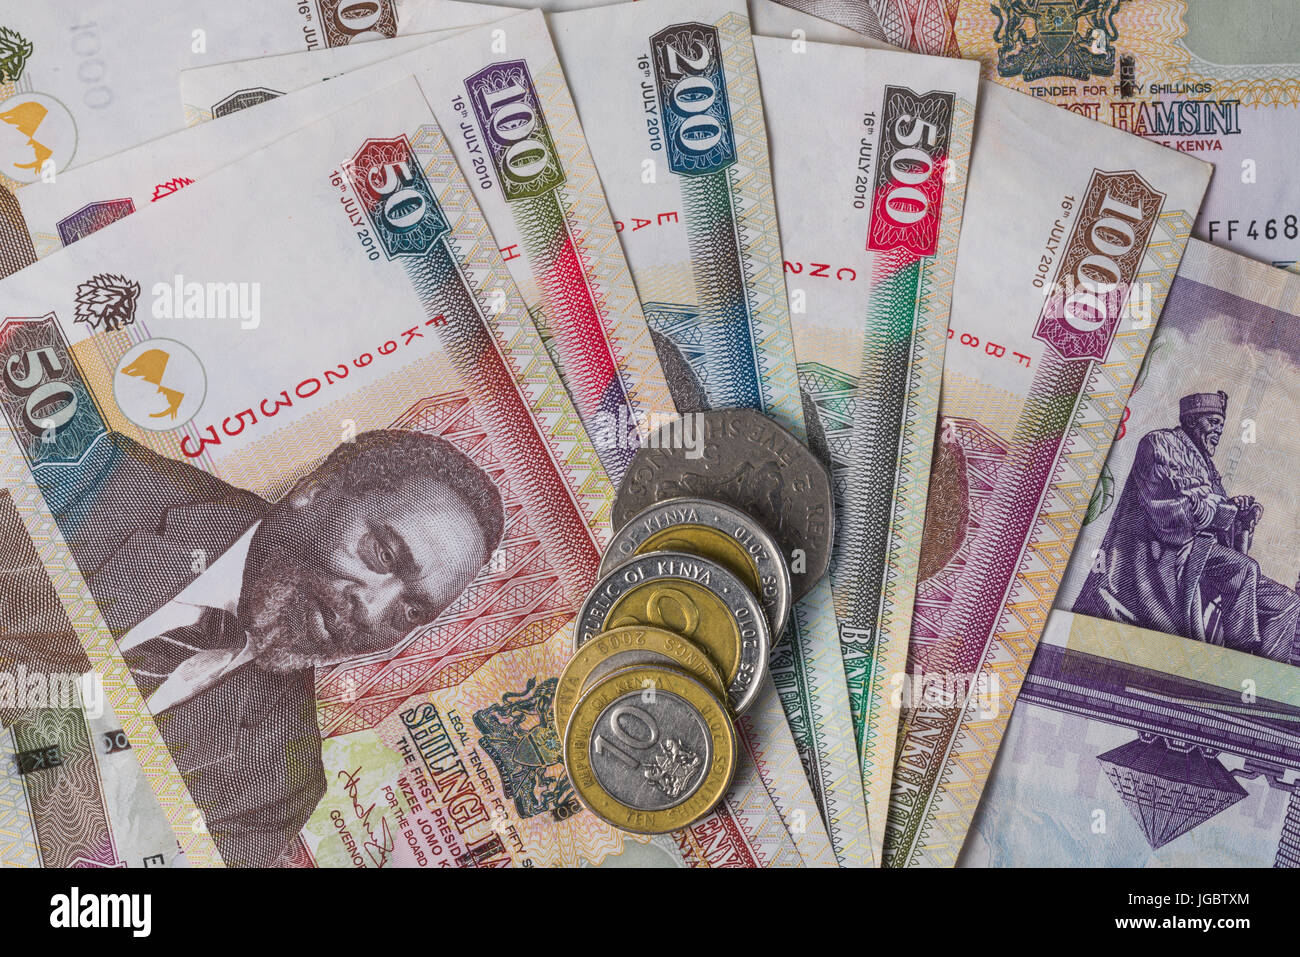 Kenyan Shilling Bank Notes And Coins In Various Denominations - Stock Image